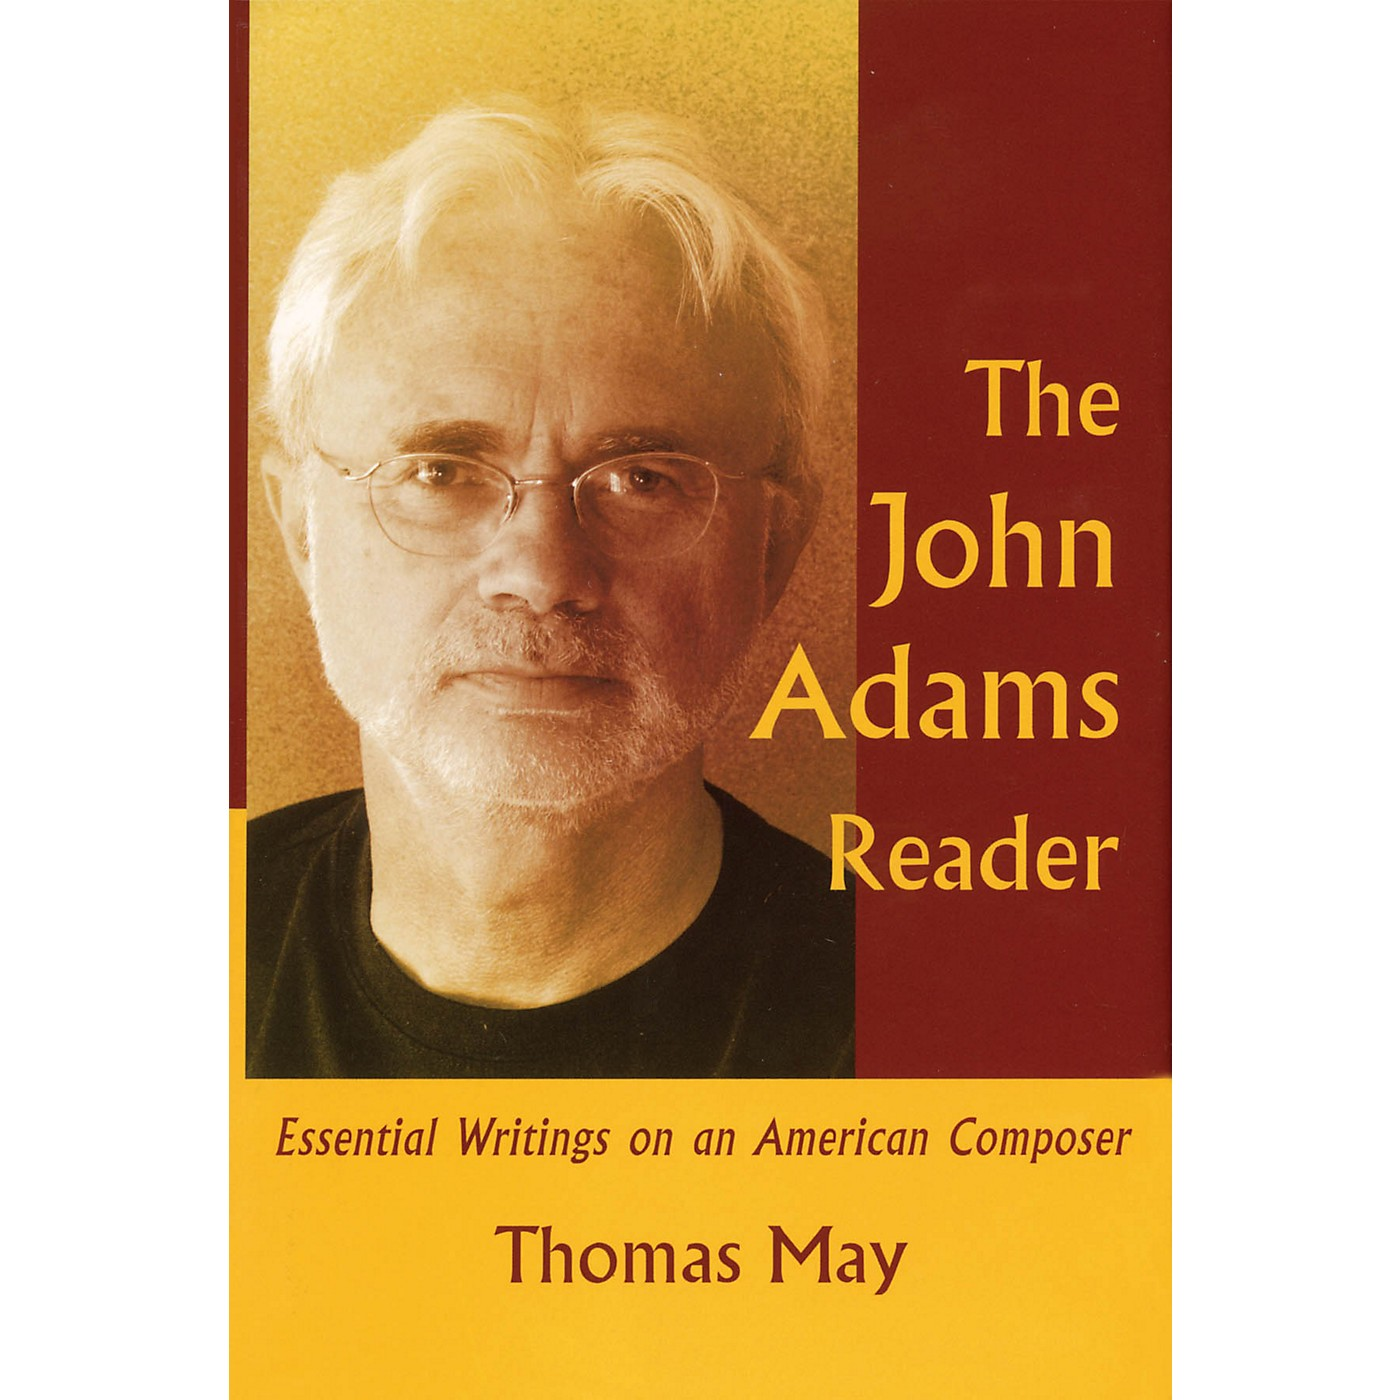 Amadeus Press The John Adams Reader (Essential Writings on an American Composer) Amadeus Series Hardcover by Thomas May thumbnail